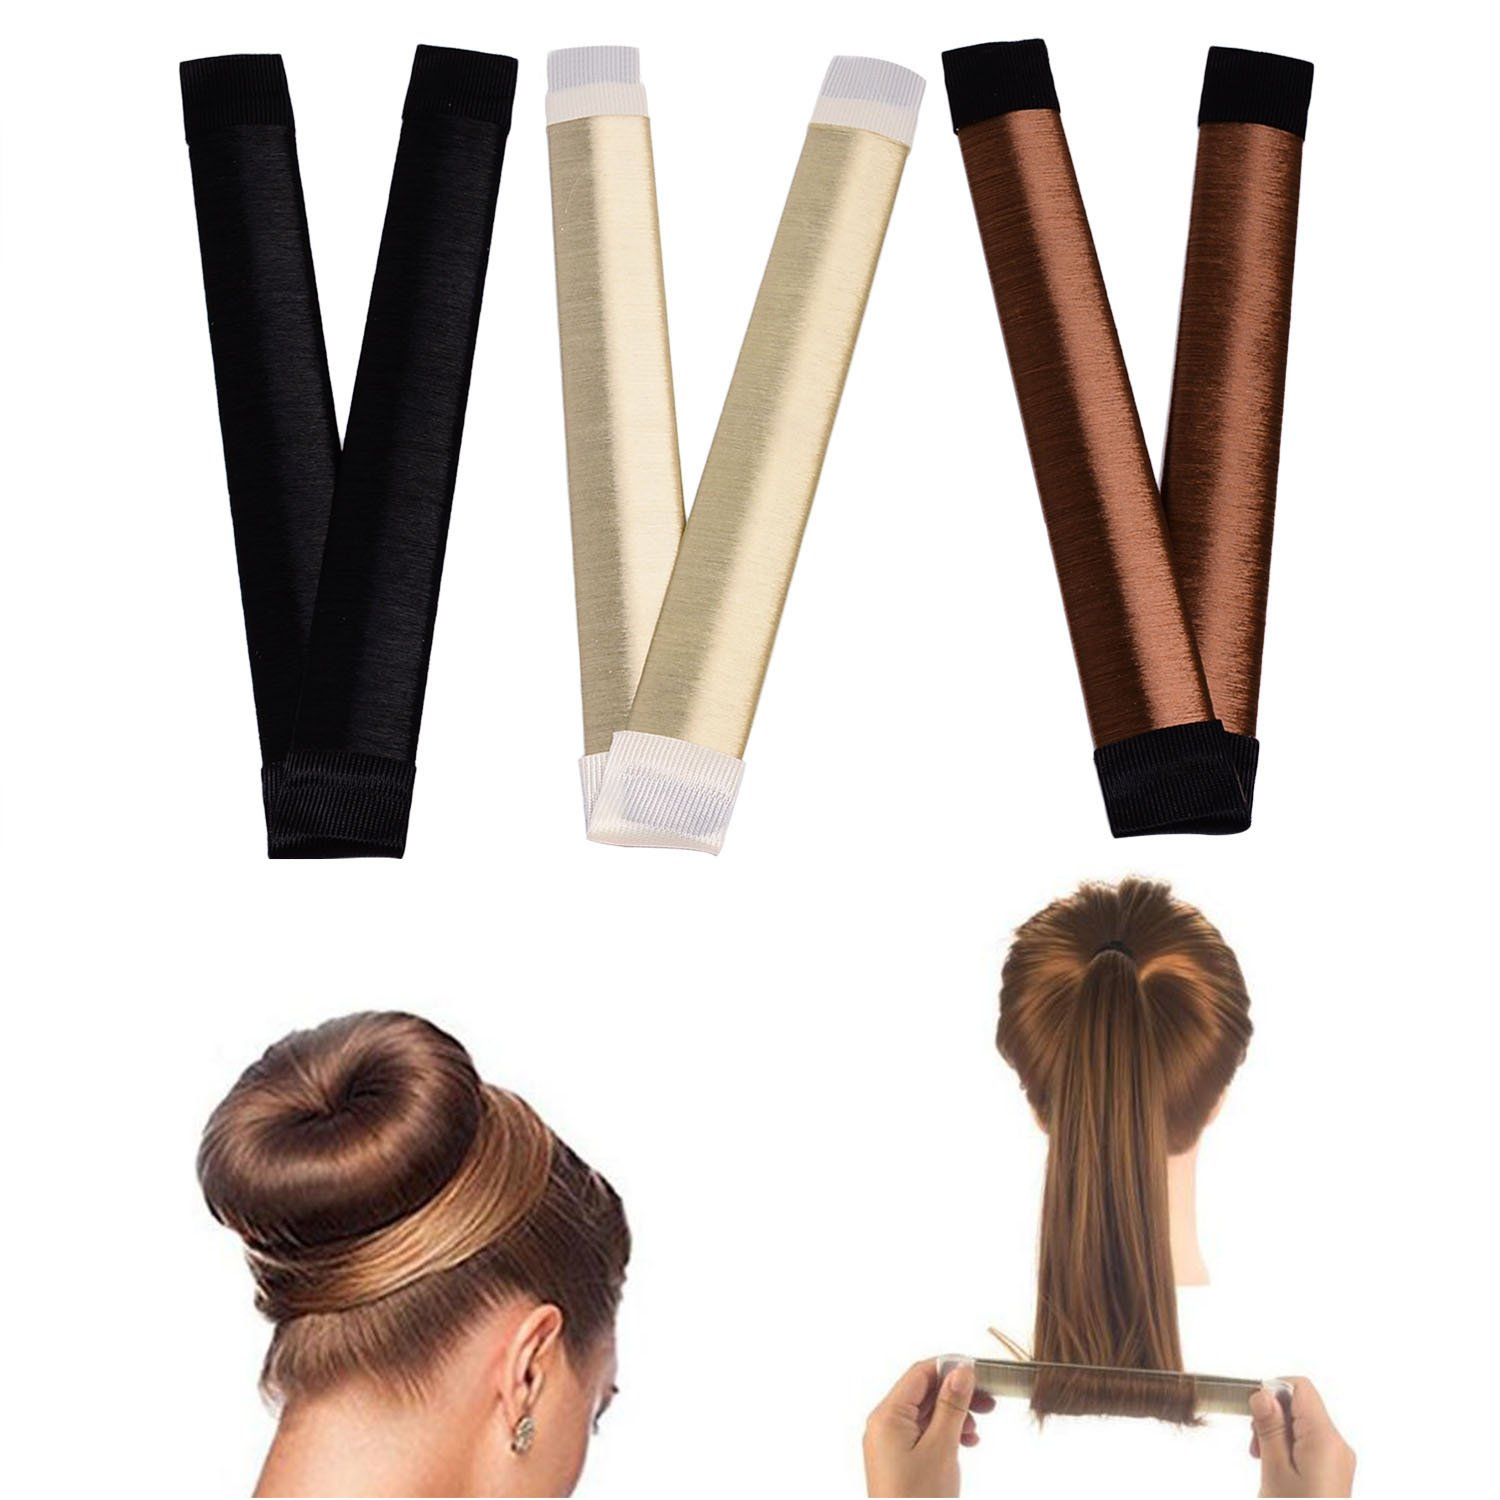 Hair bun maker-3 Pack Hair bun dount+10 Piece Professional Multicolor Plastic Hair Clips+Hair rope, Hair Styling Making DIY Curler Roller Hairstyle Tools by haomiao (Image #8)